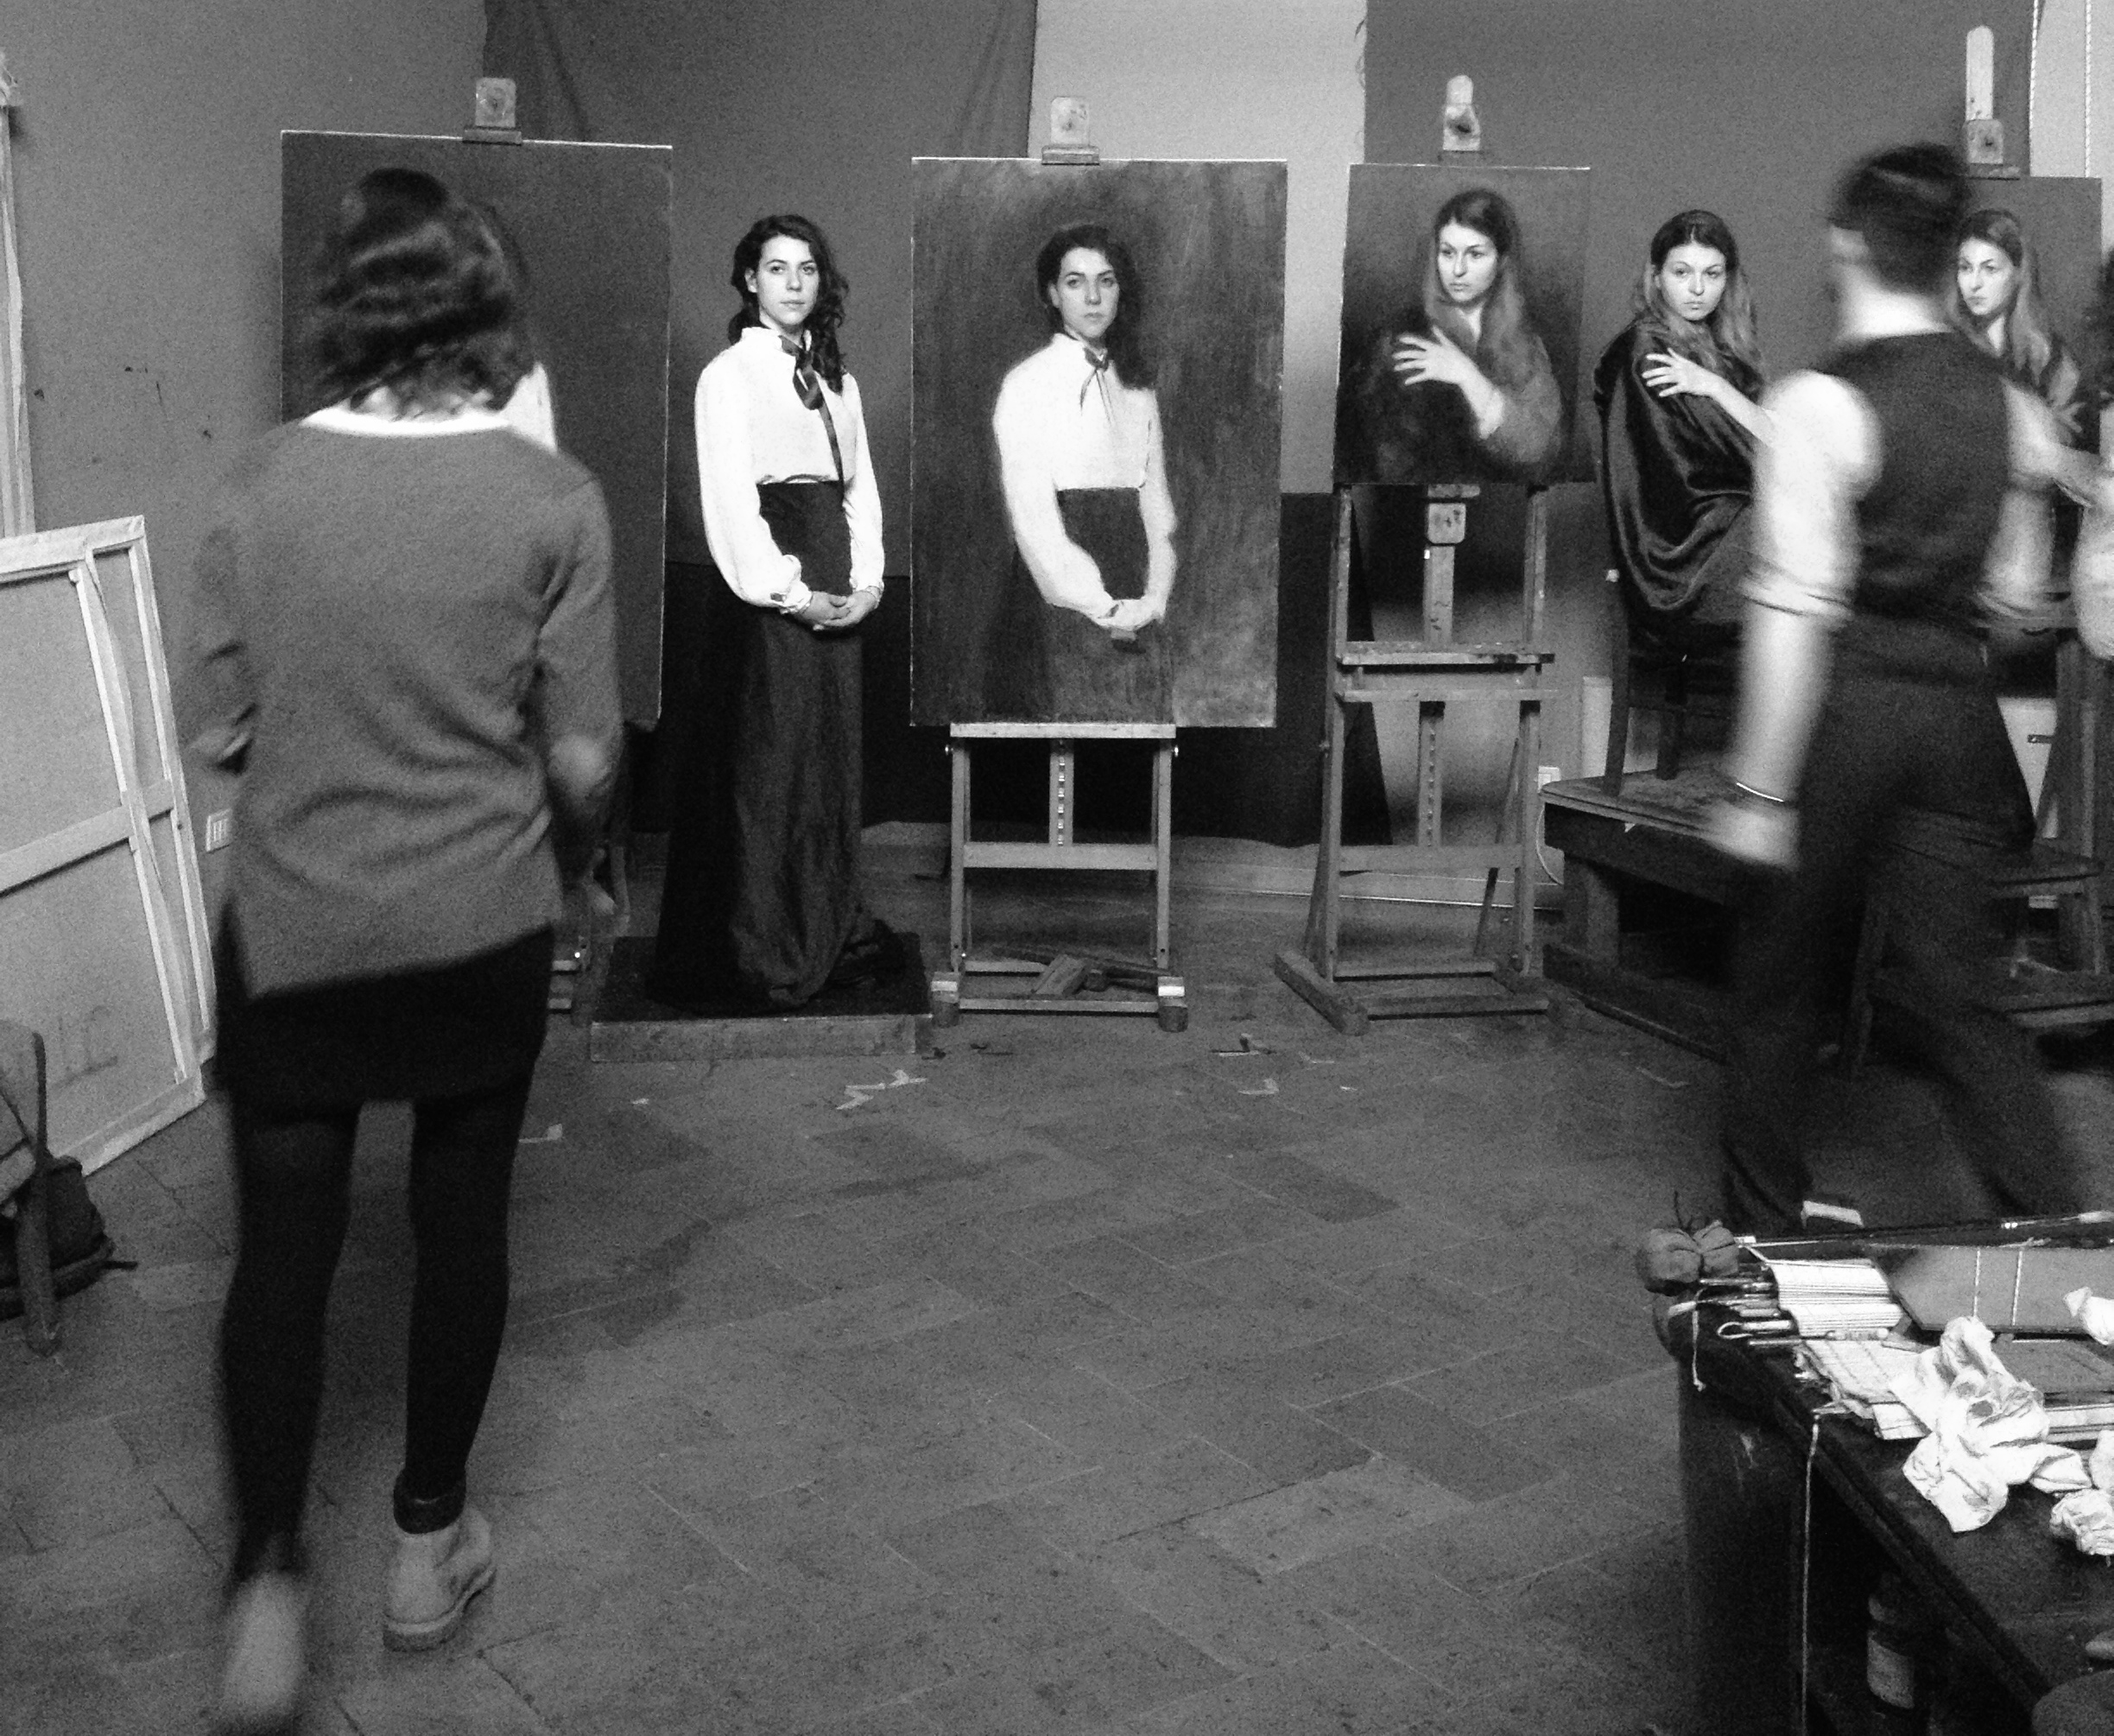 Paintings being developed through the sight-size method.